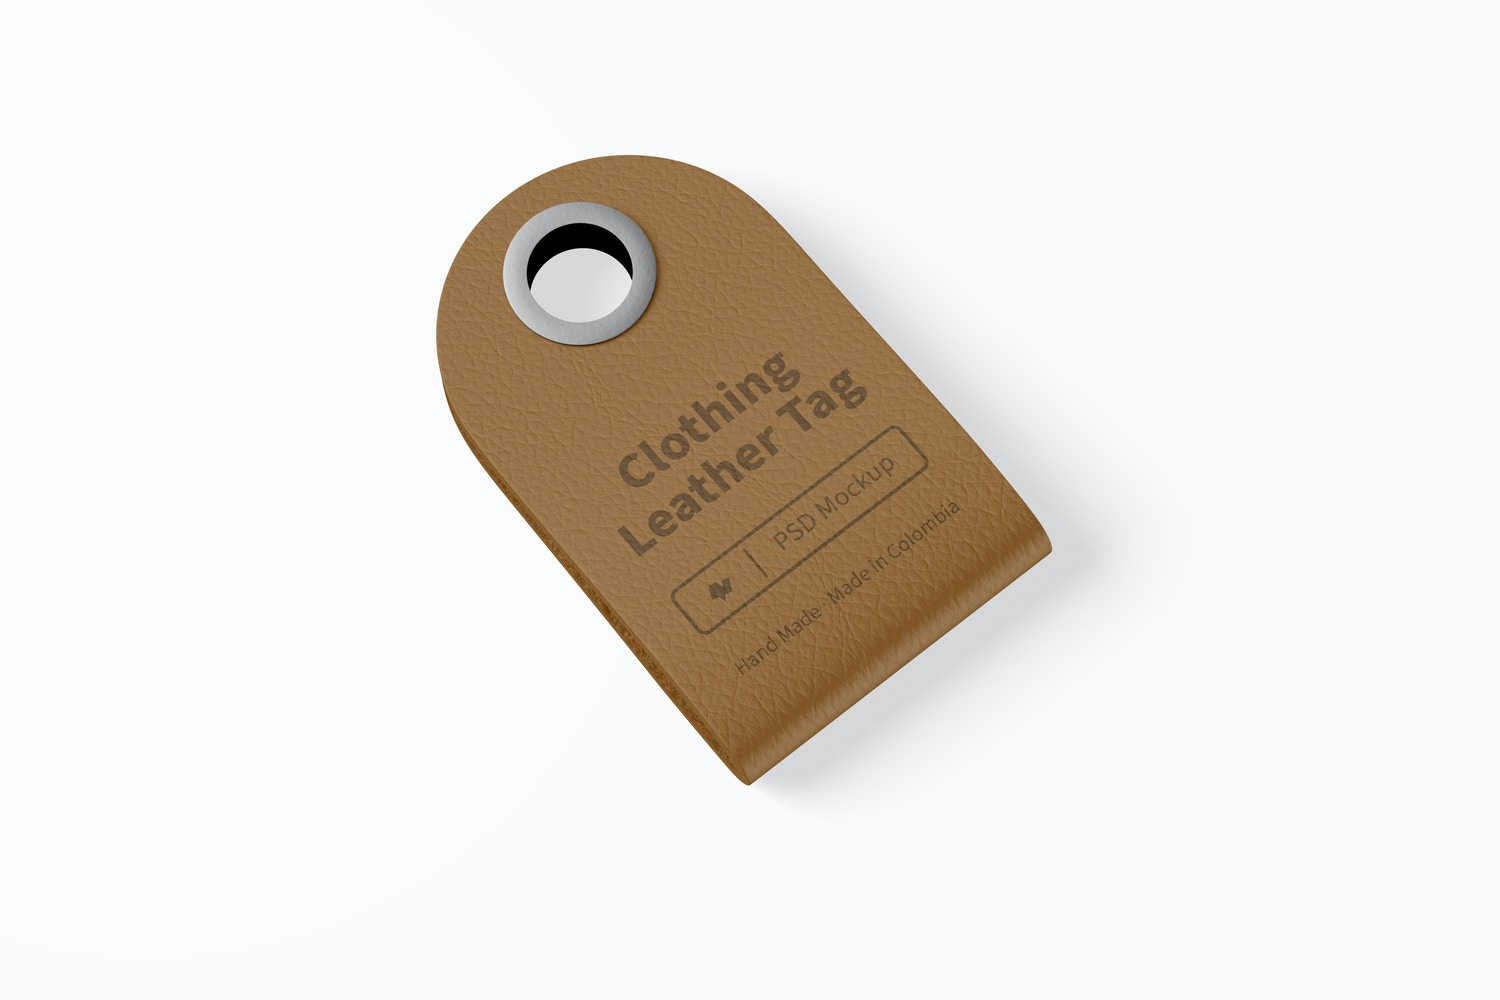 Clothing Leather Tag Mockup, Top View